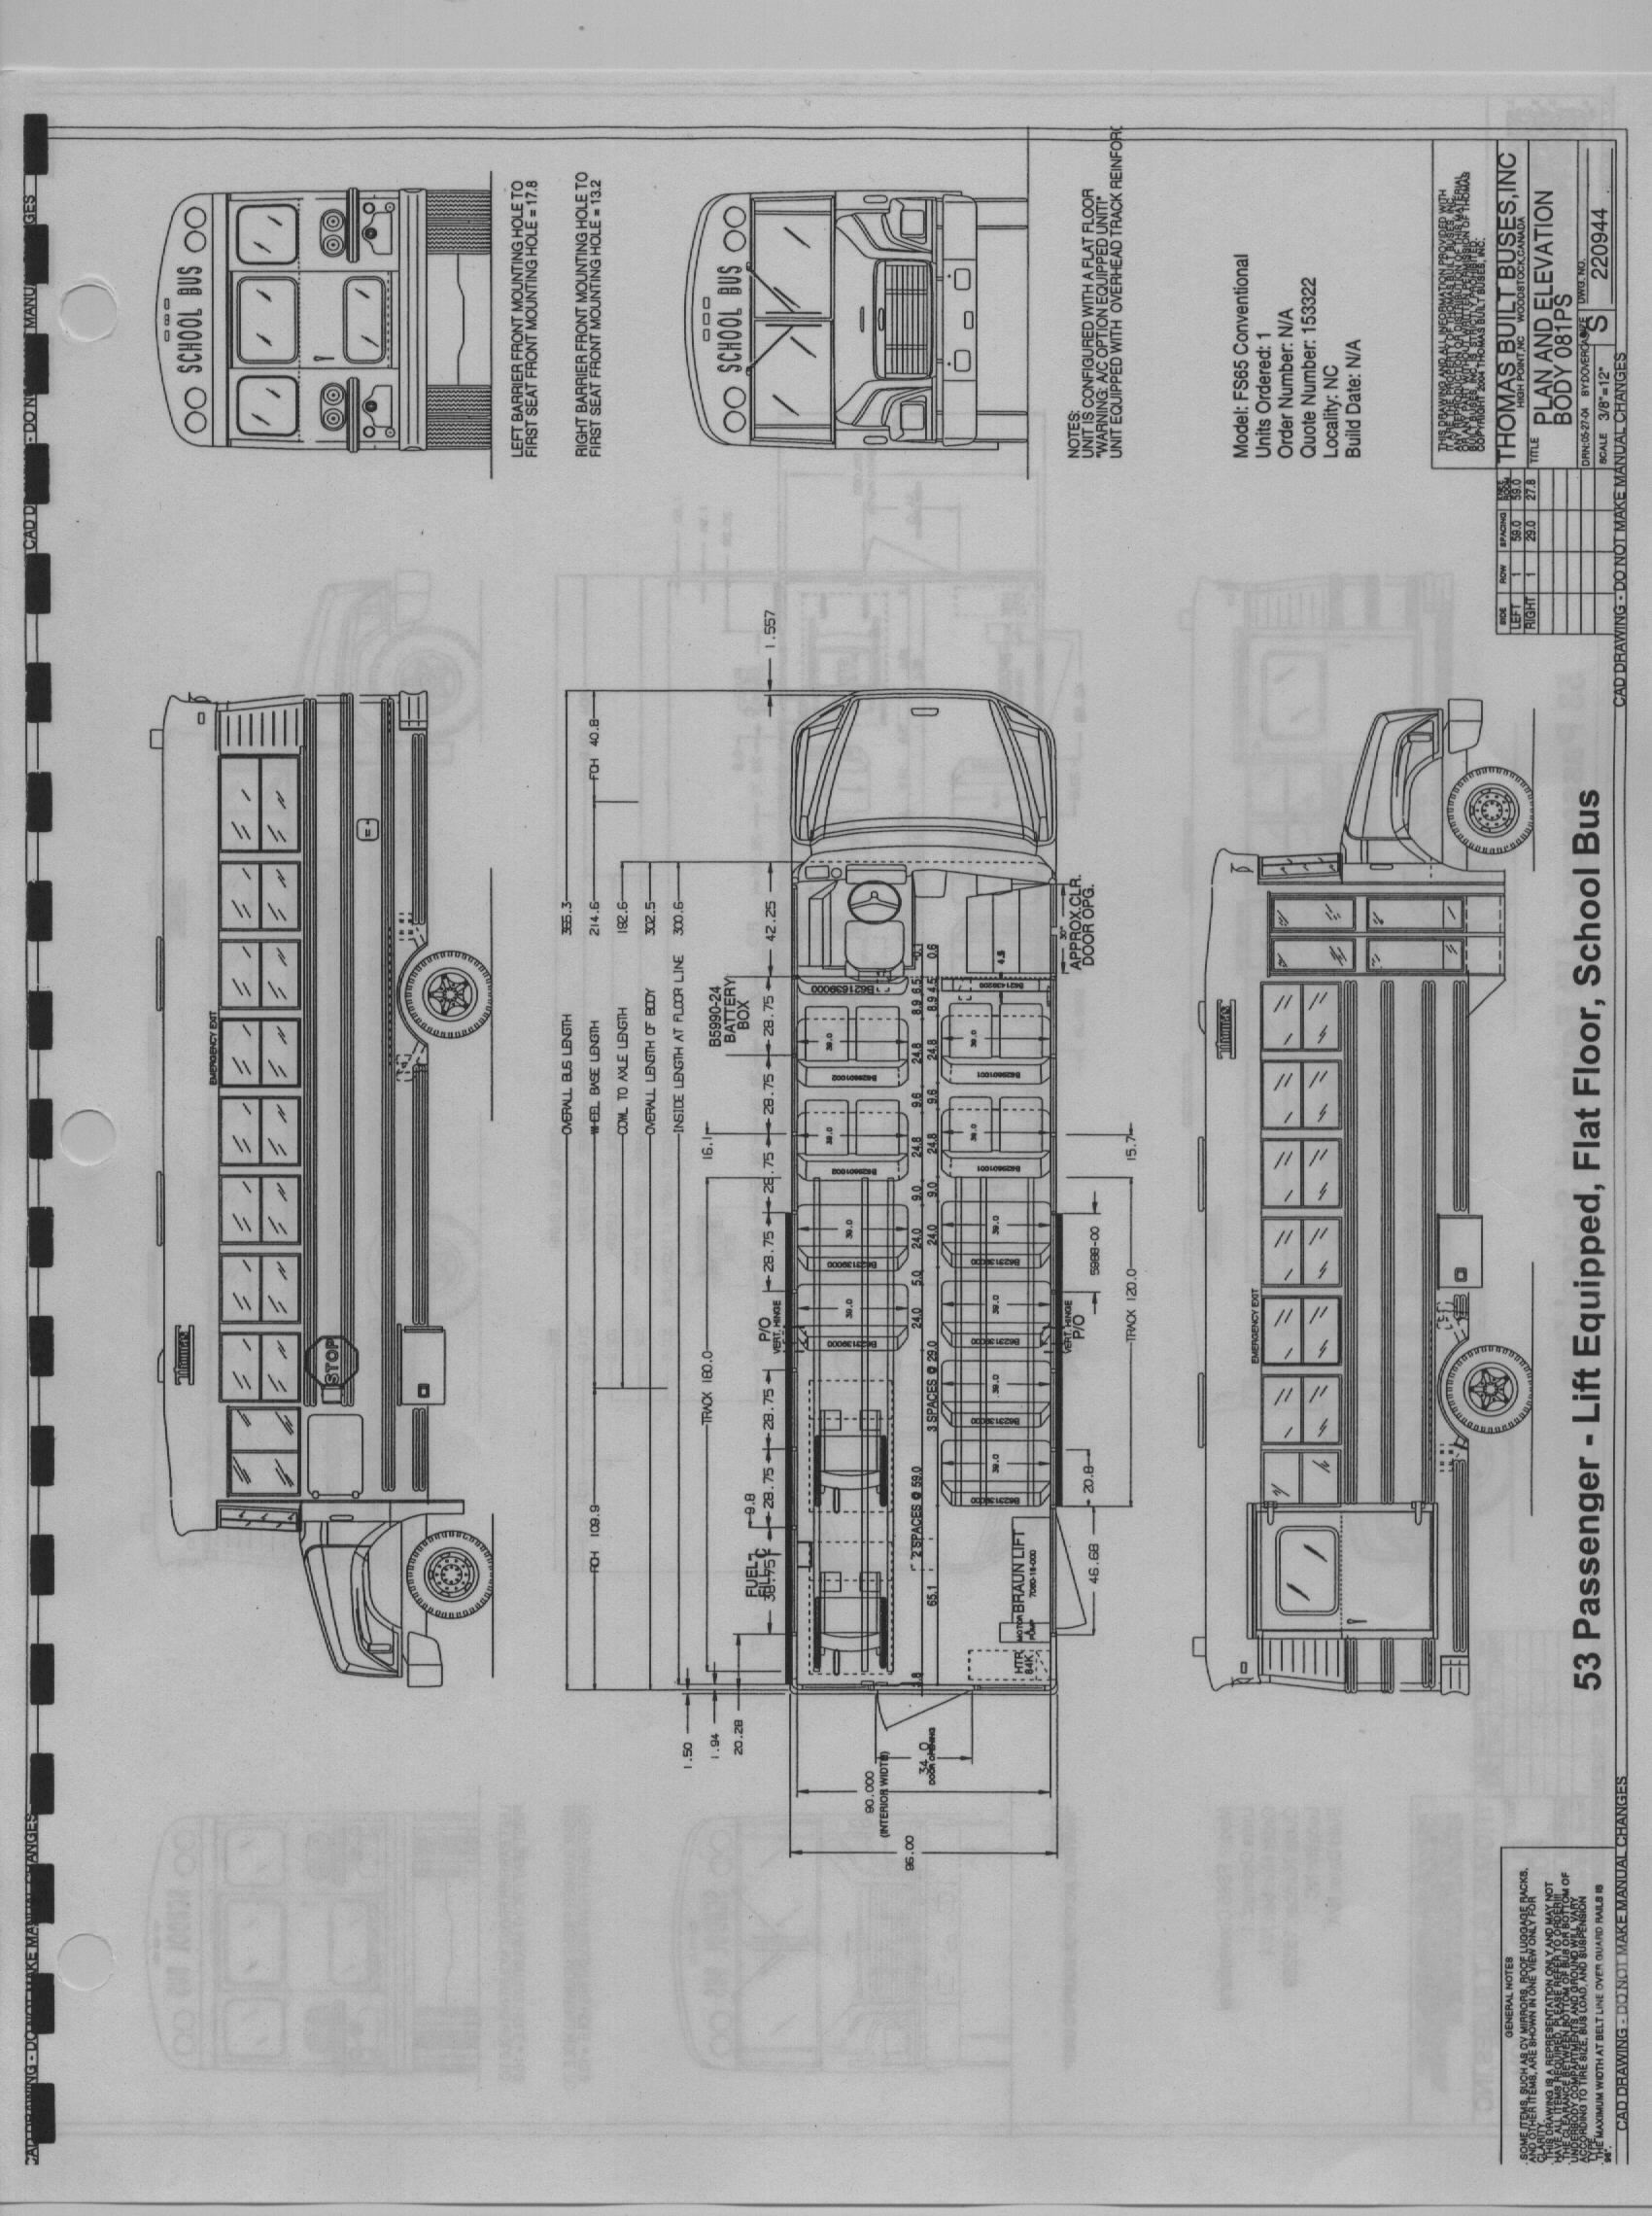 bluebird lift wiring diagram wiring library lift parts diagram bluebird lift wiring diagram [ 1700 x 2280 Pixel ]